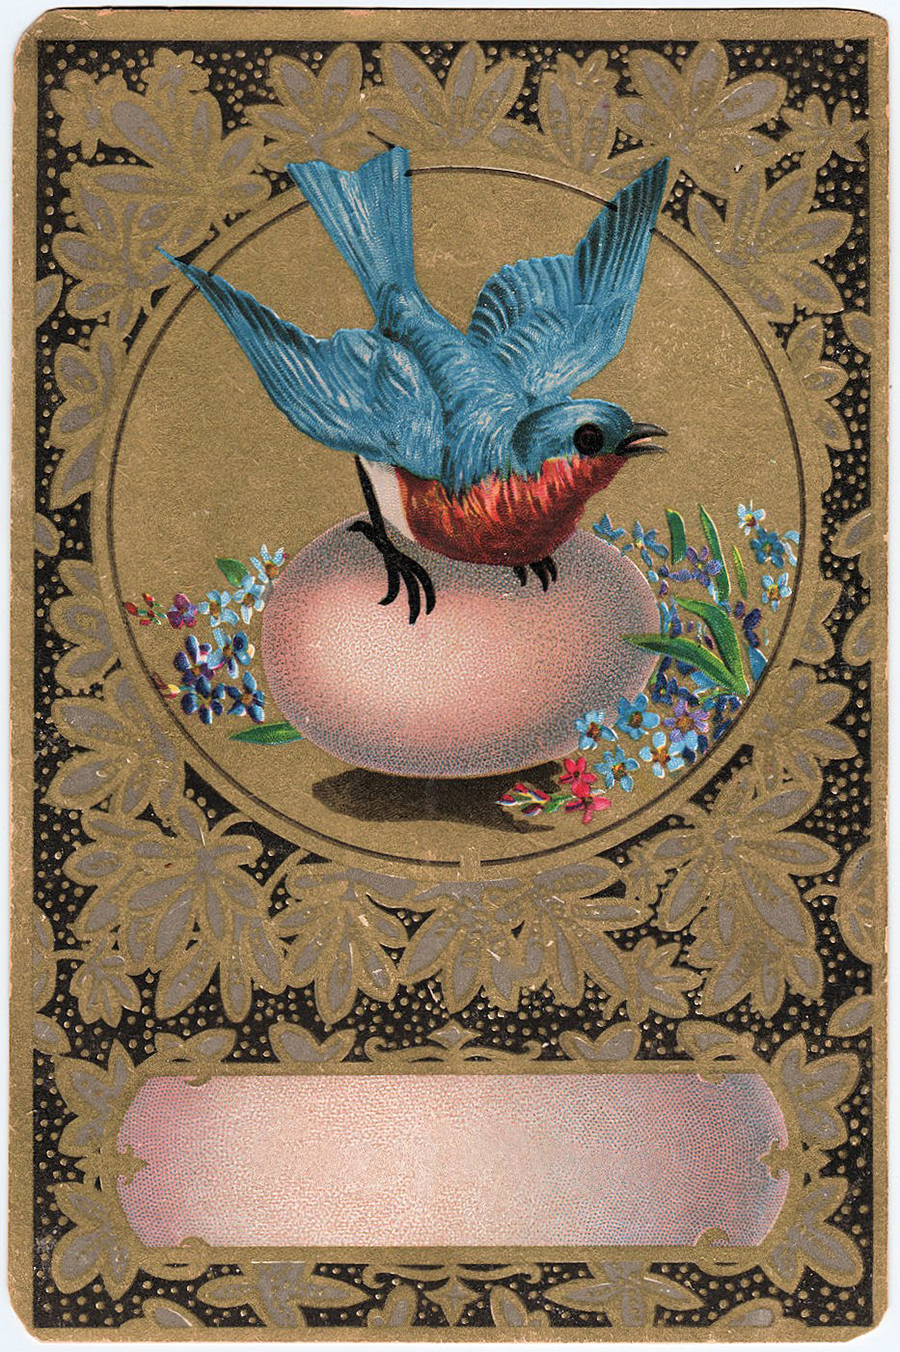 Bluebird-Egg-Vintage-Image-GraphicsFairy